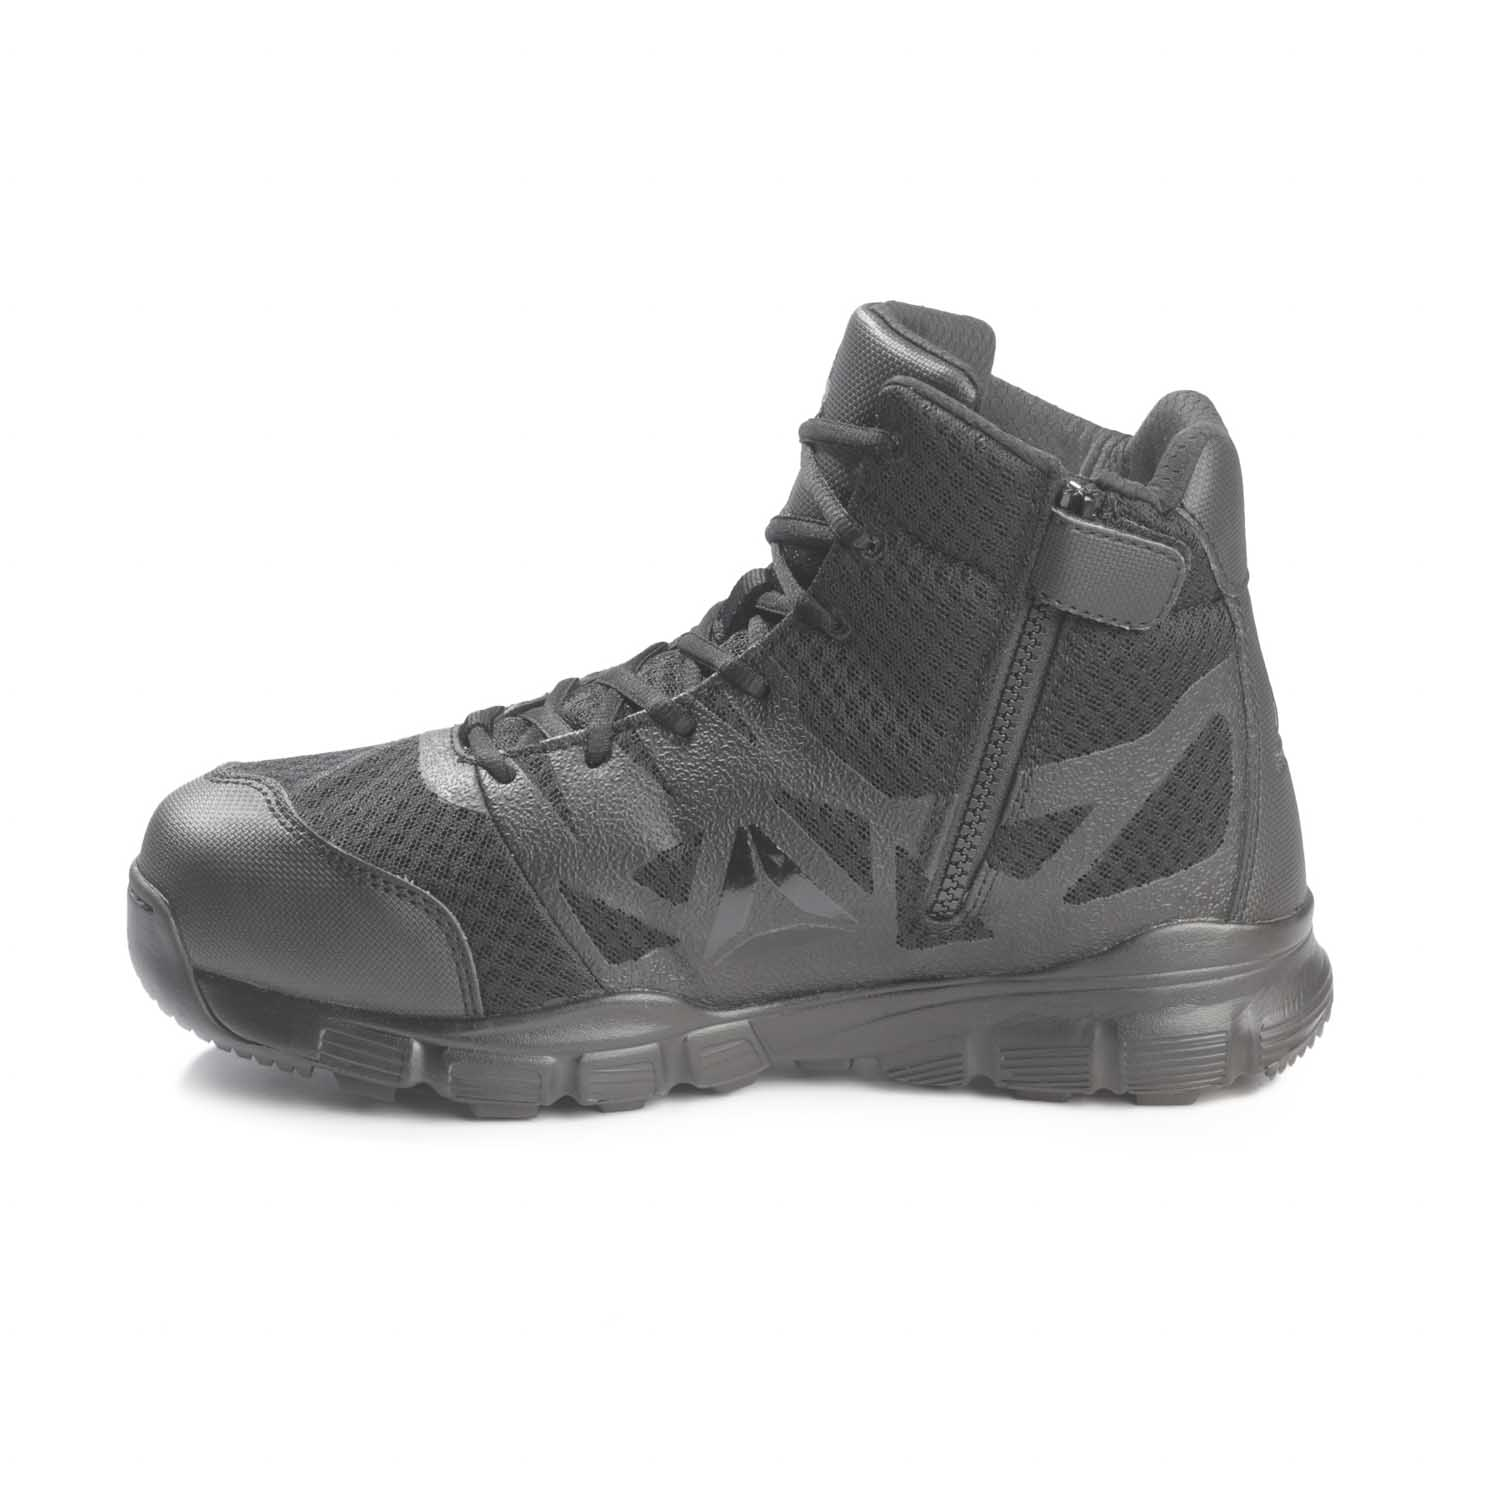 Reebok 5 Quot Dauntless Ultra Light Side Zip Hiker Boots